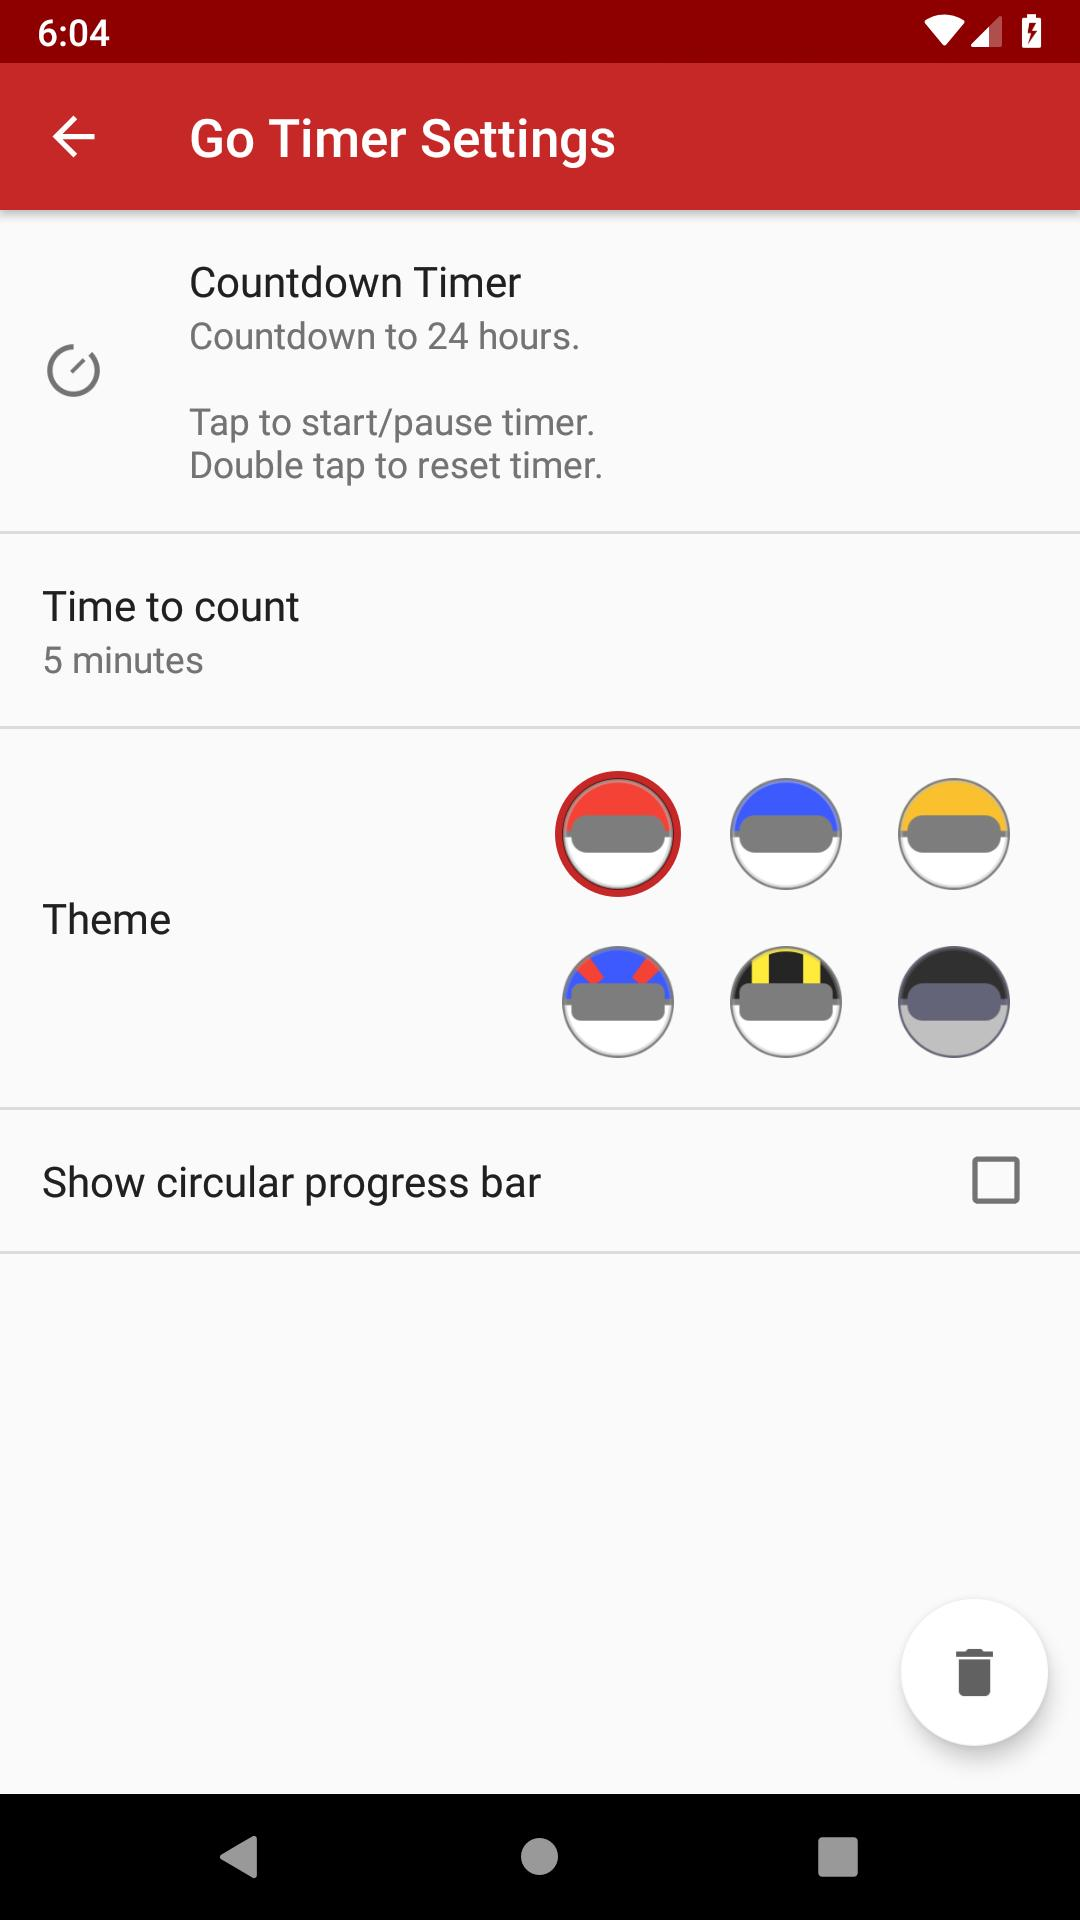 Go Timer 3.2.0 Screenshot 2